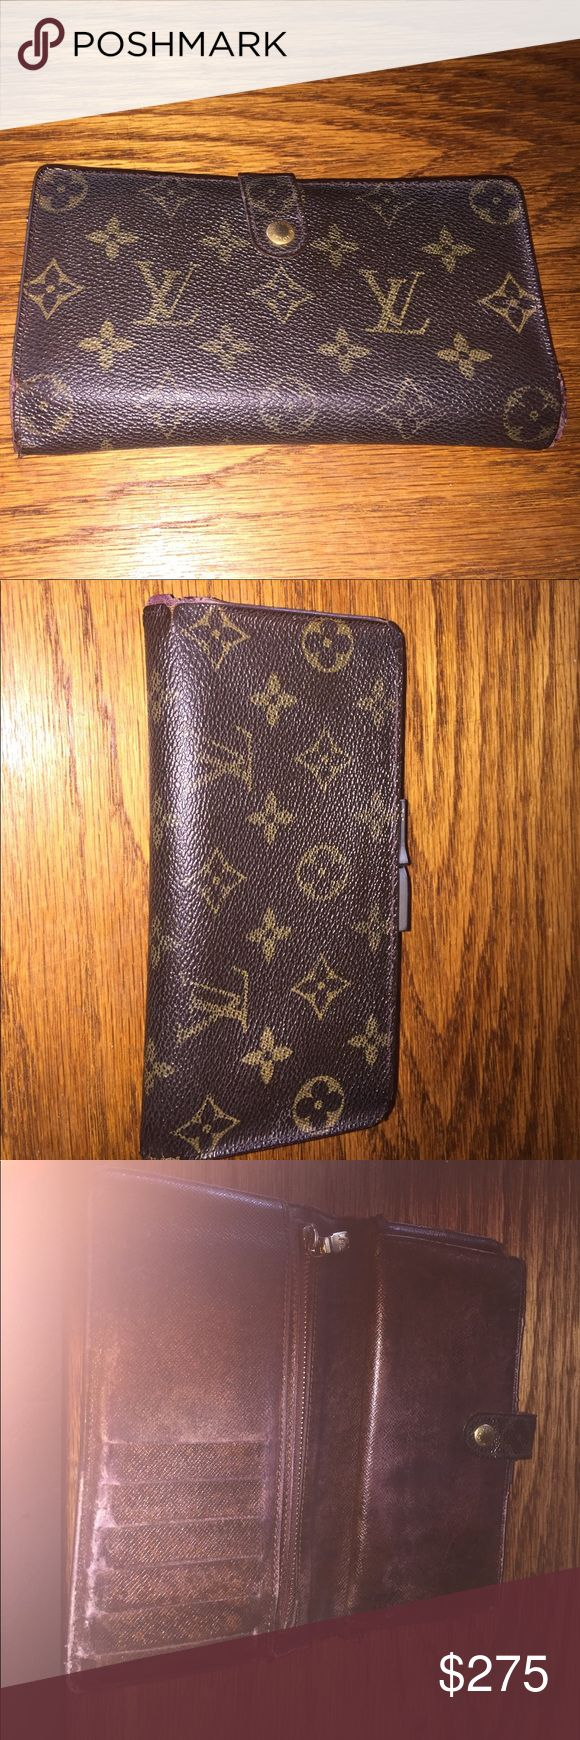 Authentic Louis Vuitton wallet 🔥🔥🔥 price reduced🔥🔥🔥Authentic Louis Vuitton wallet some wear at both corners lots of inside compartments including claspe zipper credit card holders checkbook and cash compartments sighns of wear and little peeling at snap see pics comes with box Louis Vuitton Bags Wallets